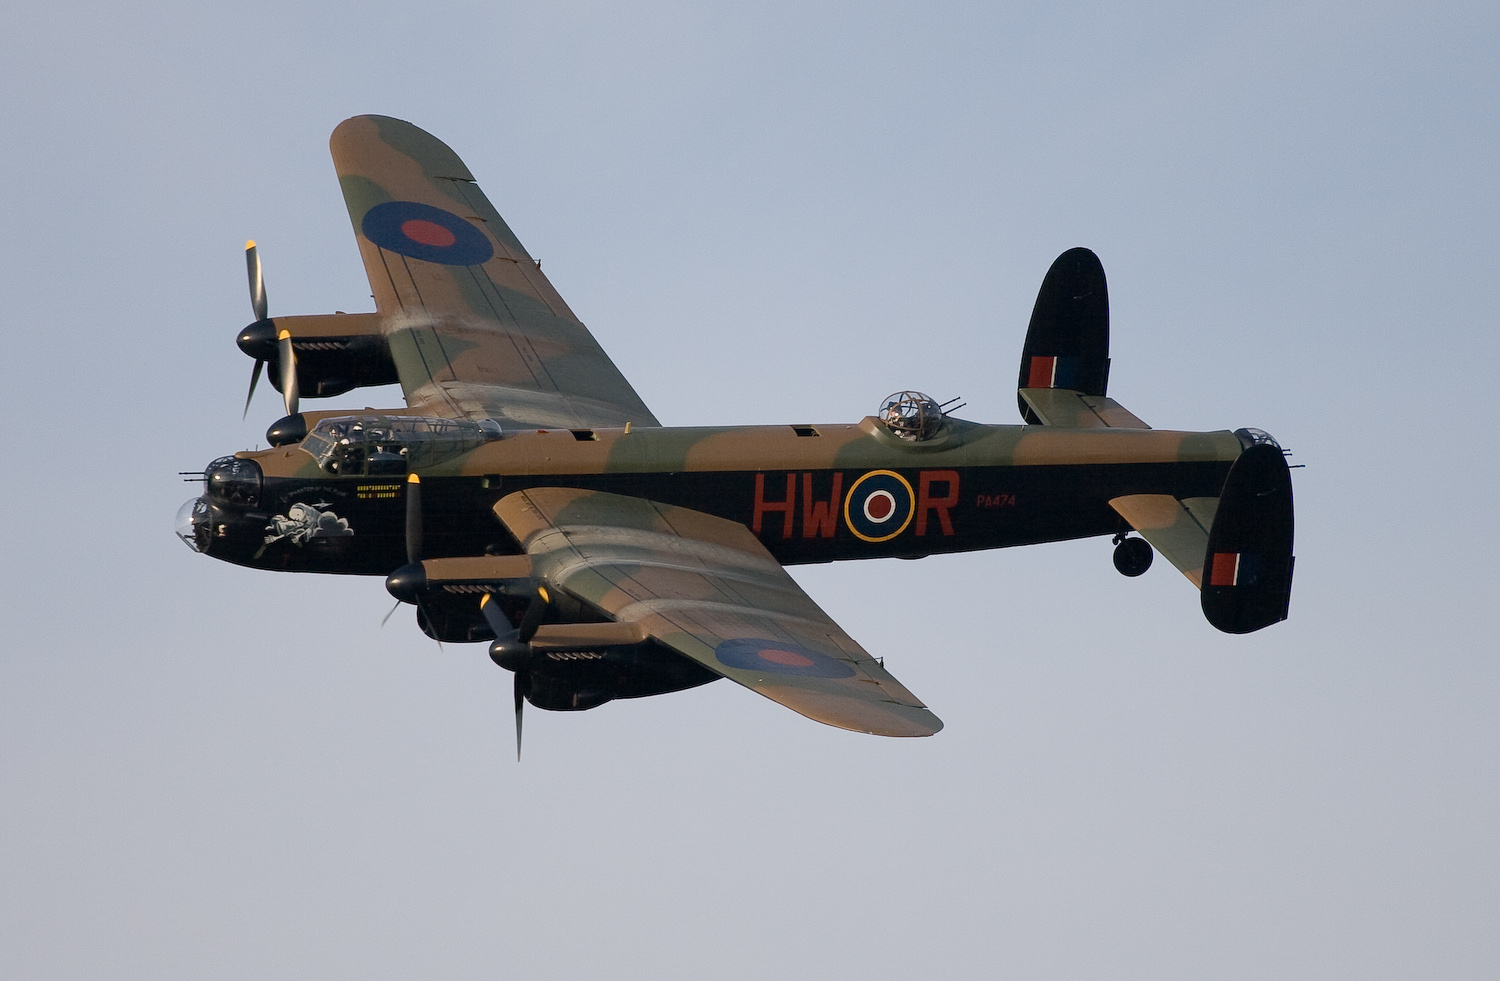 The Lancaster Bomber by dazecoop